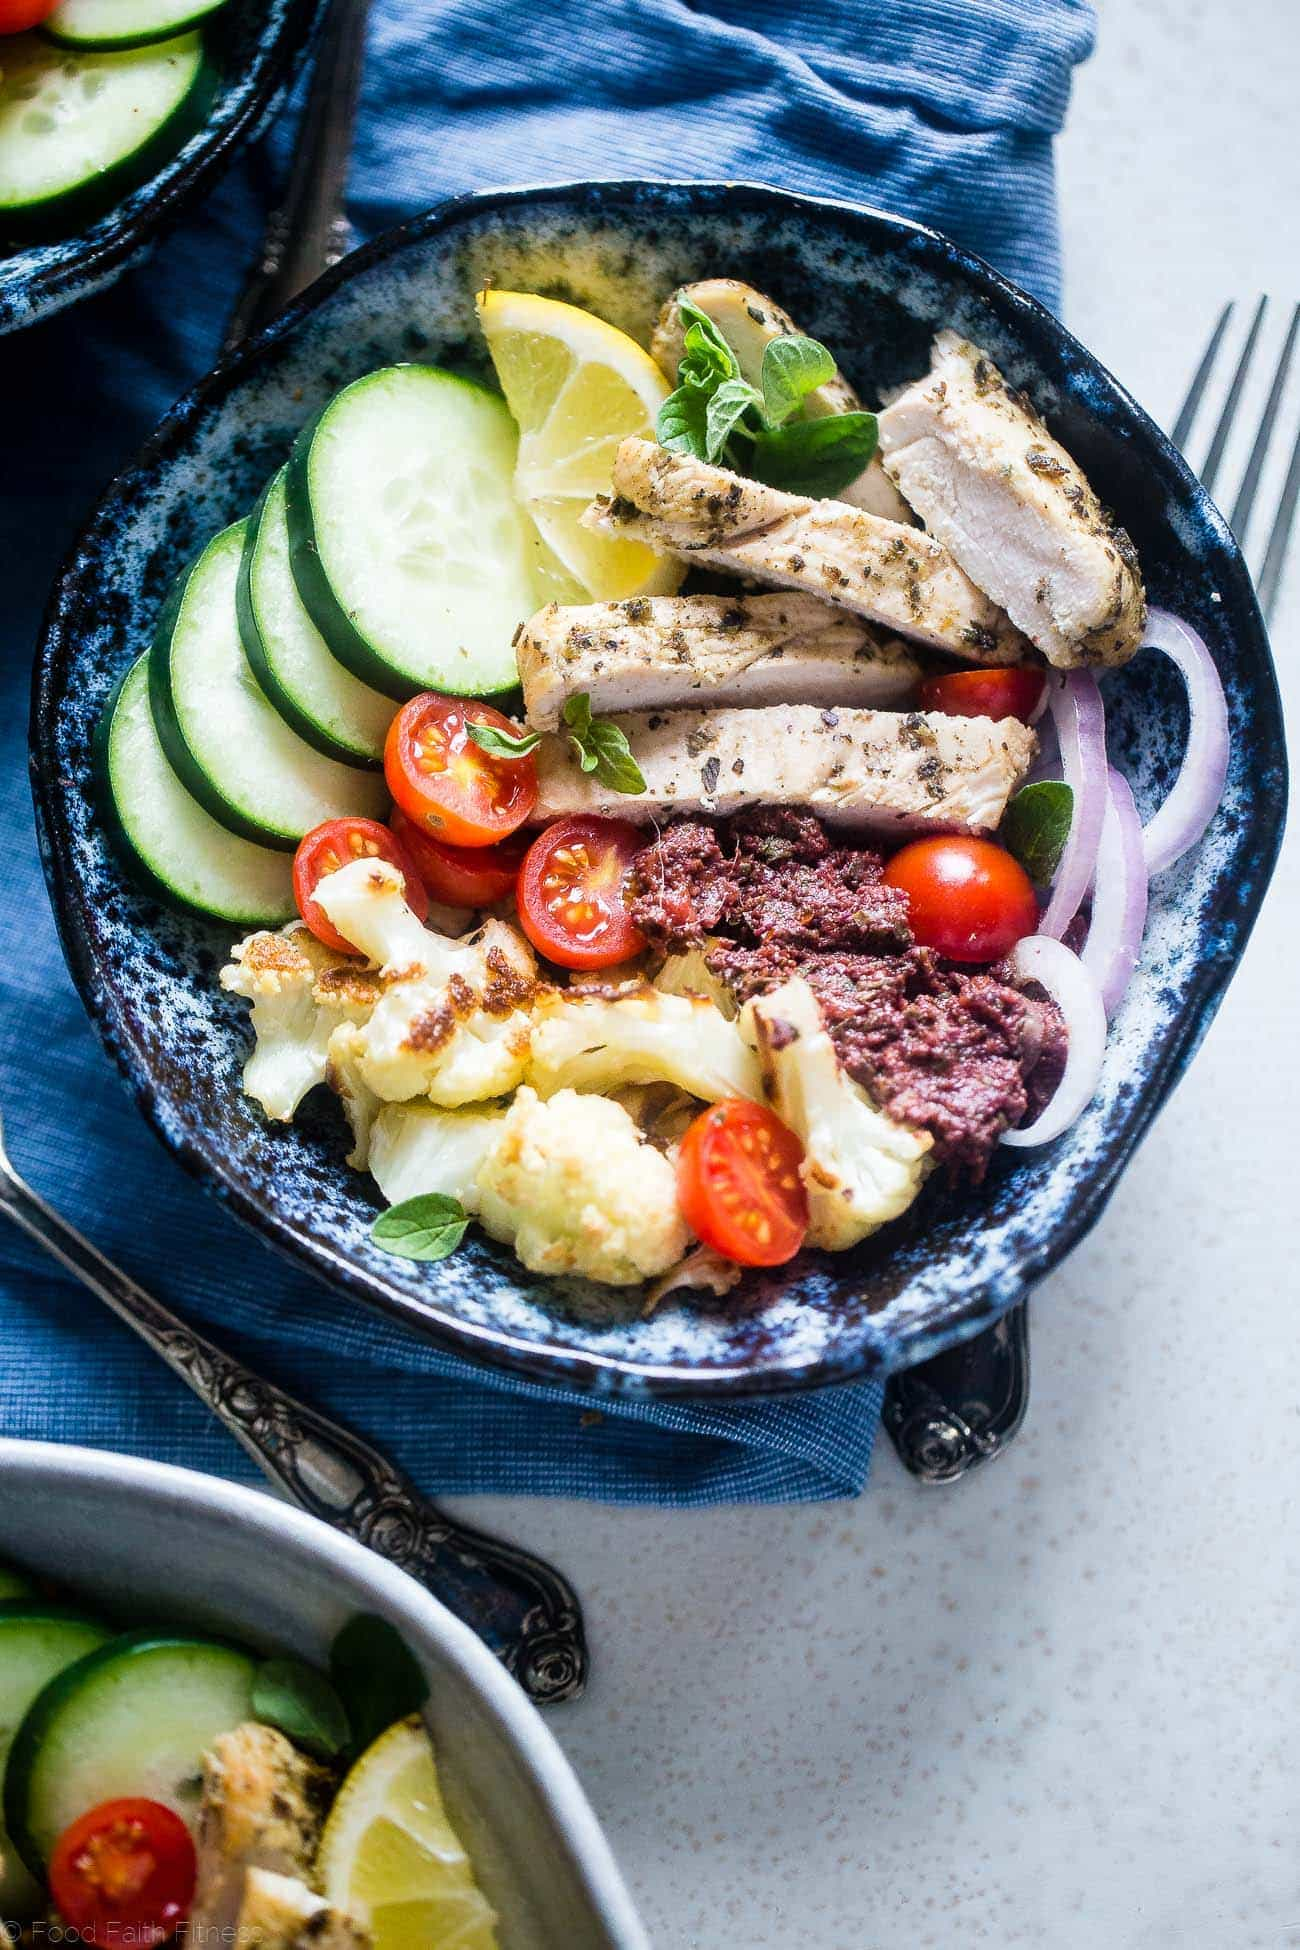 Greek Chicken Meal Prep Bowls - These low carb chicken bowls have roasted cauliflower and an olive tapenade. They're an easy, whole30 compliant, paleo meal that you can prep ahead, and their only 300 calories! | Foodfaithfitness.com | @FoodFaithFit